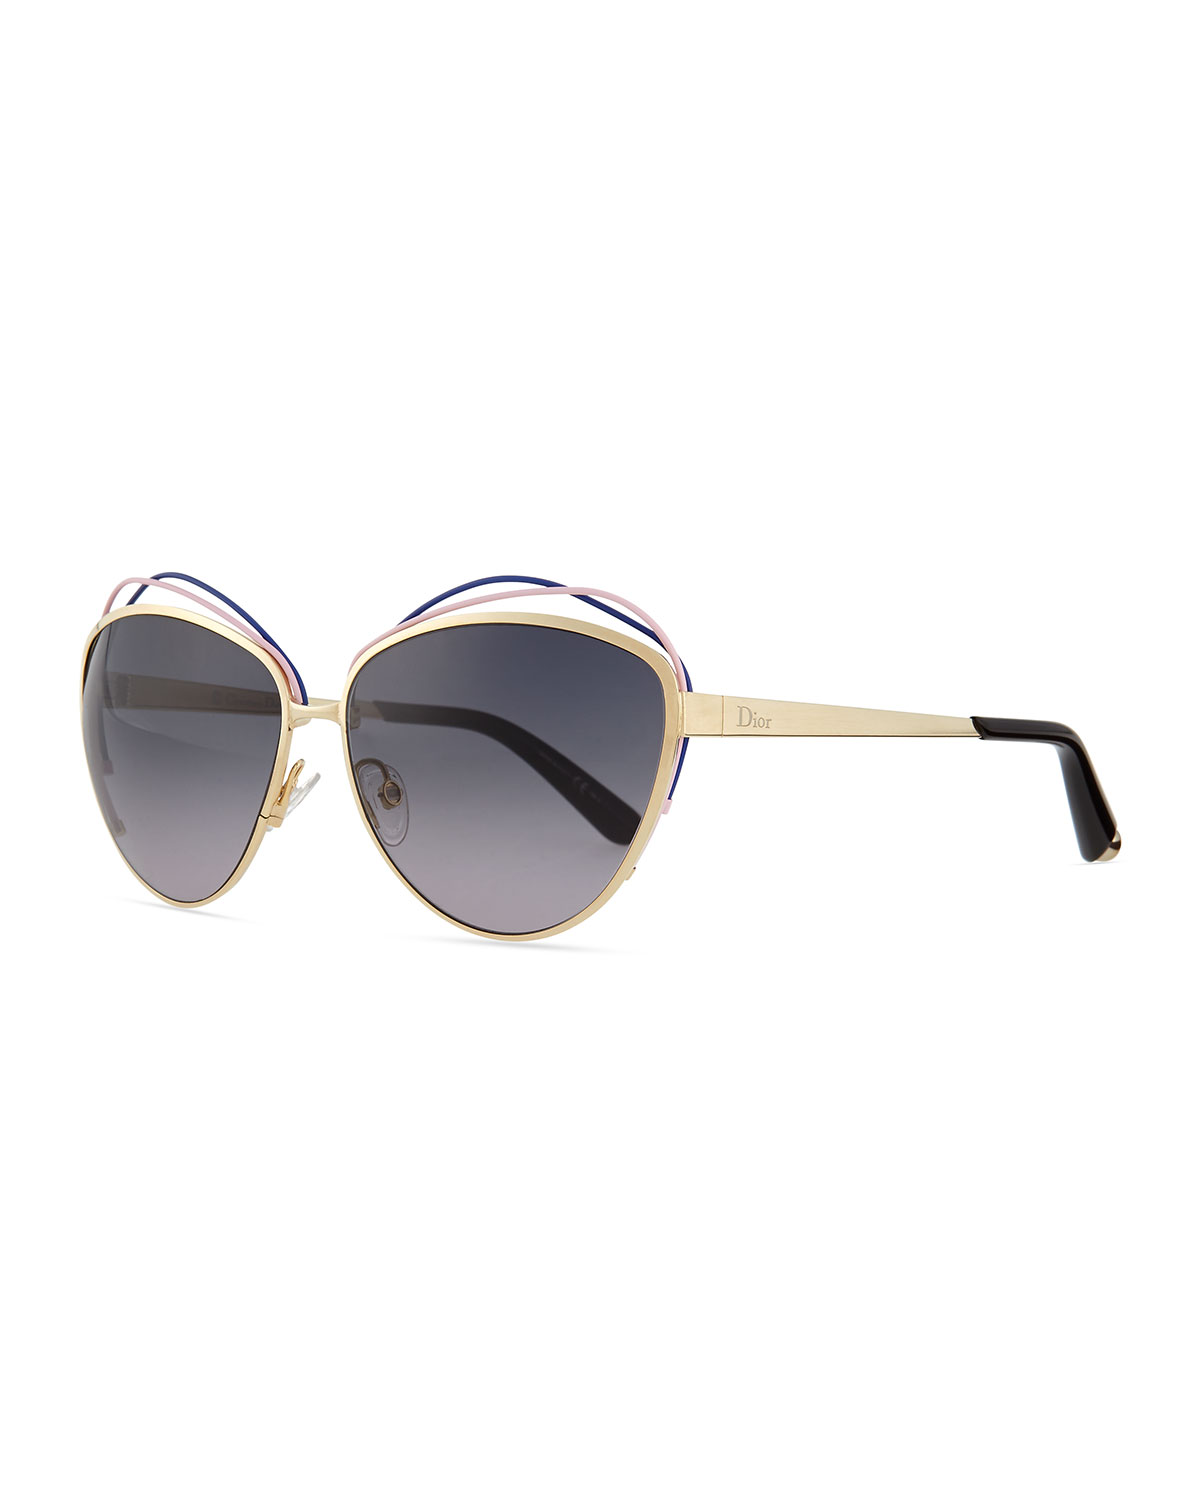 07ccddff3721 Dior Golden Metal Butterfly Sunglasses with Wire